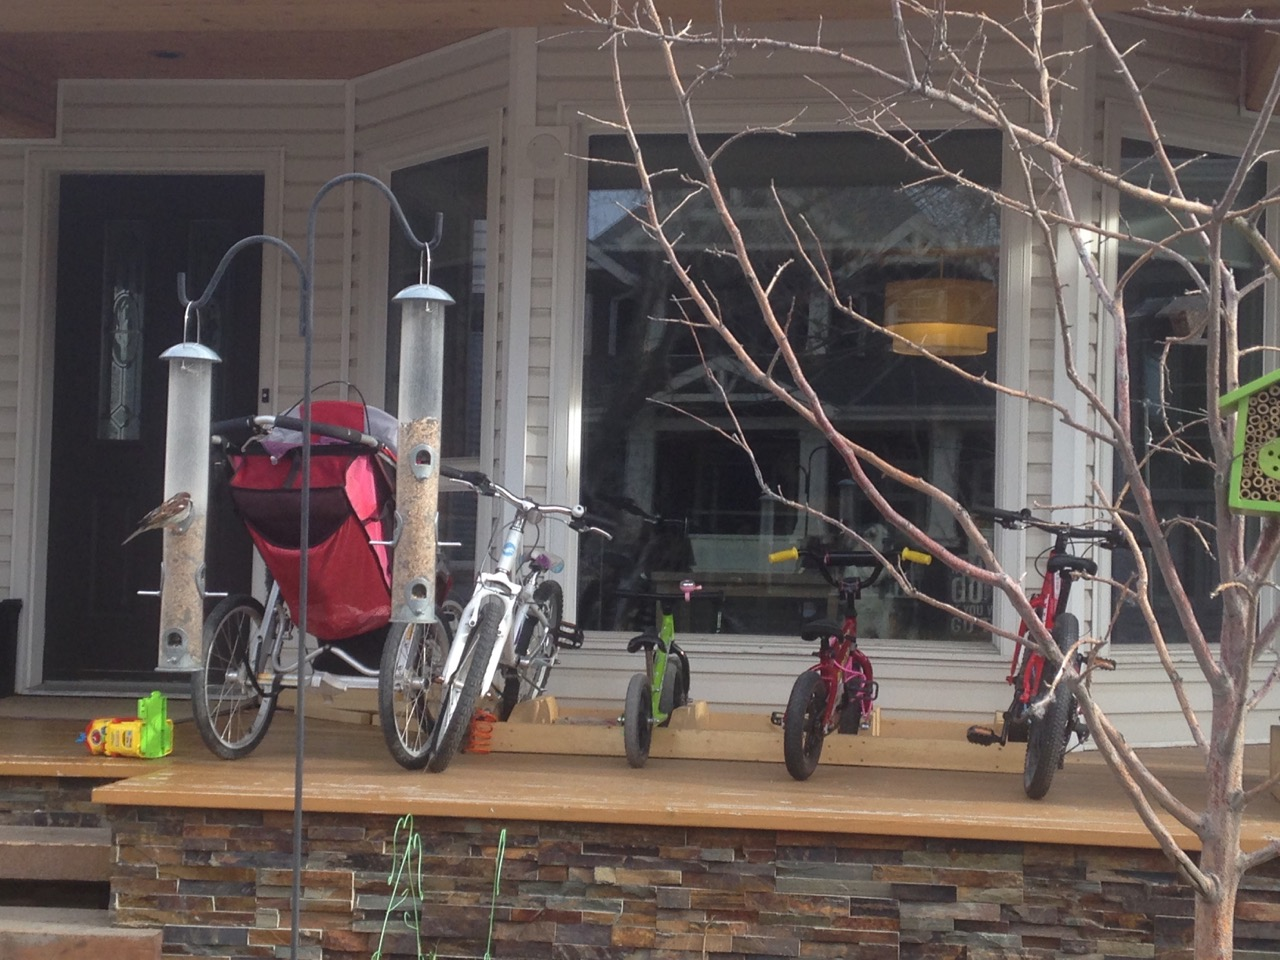 Also just a few blocks away is a house where the porch has become a bike rack. I love the fact that my community is filling up with young kids.